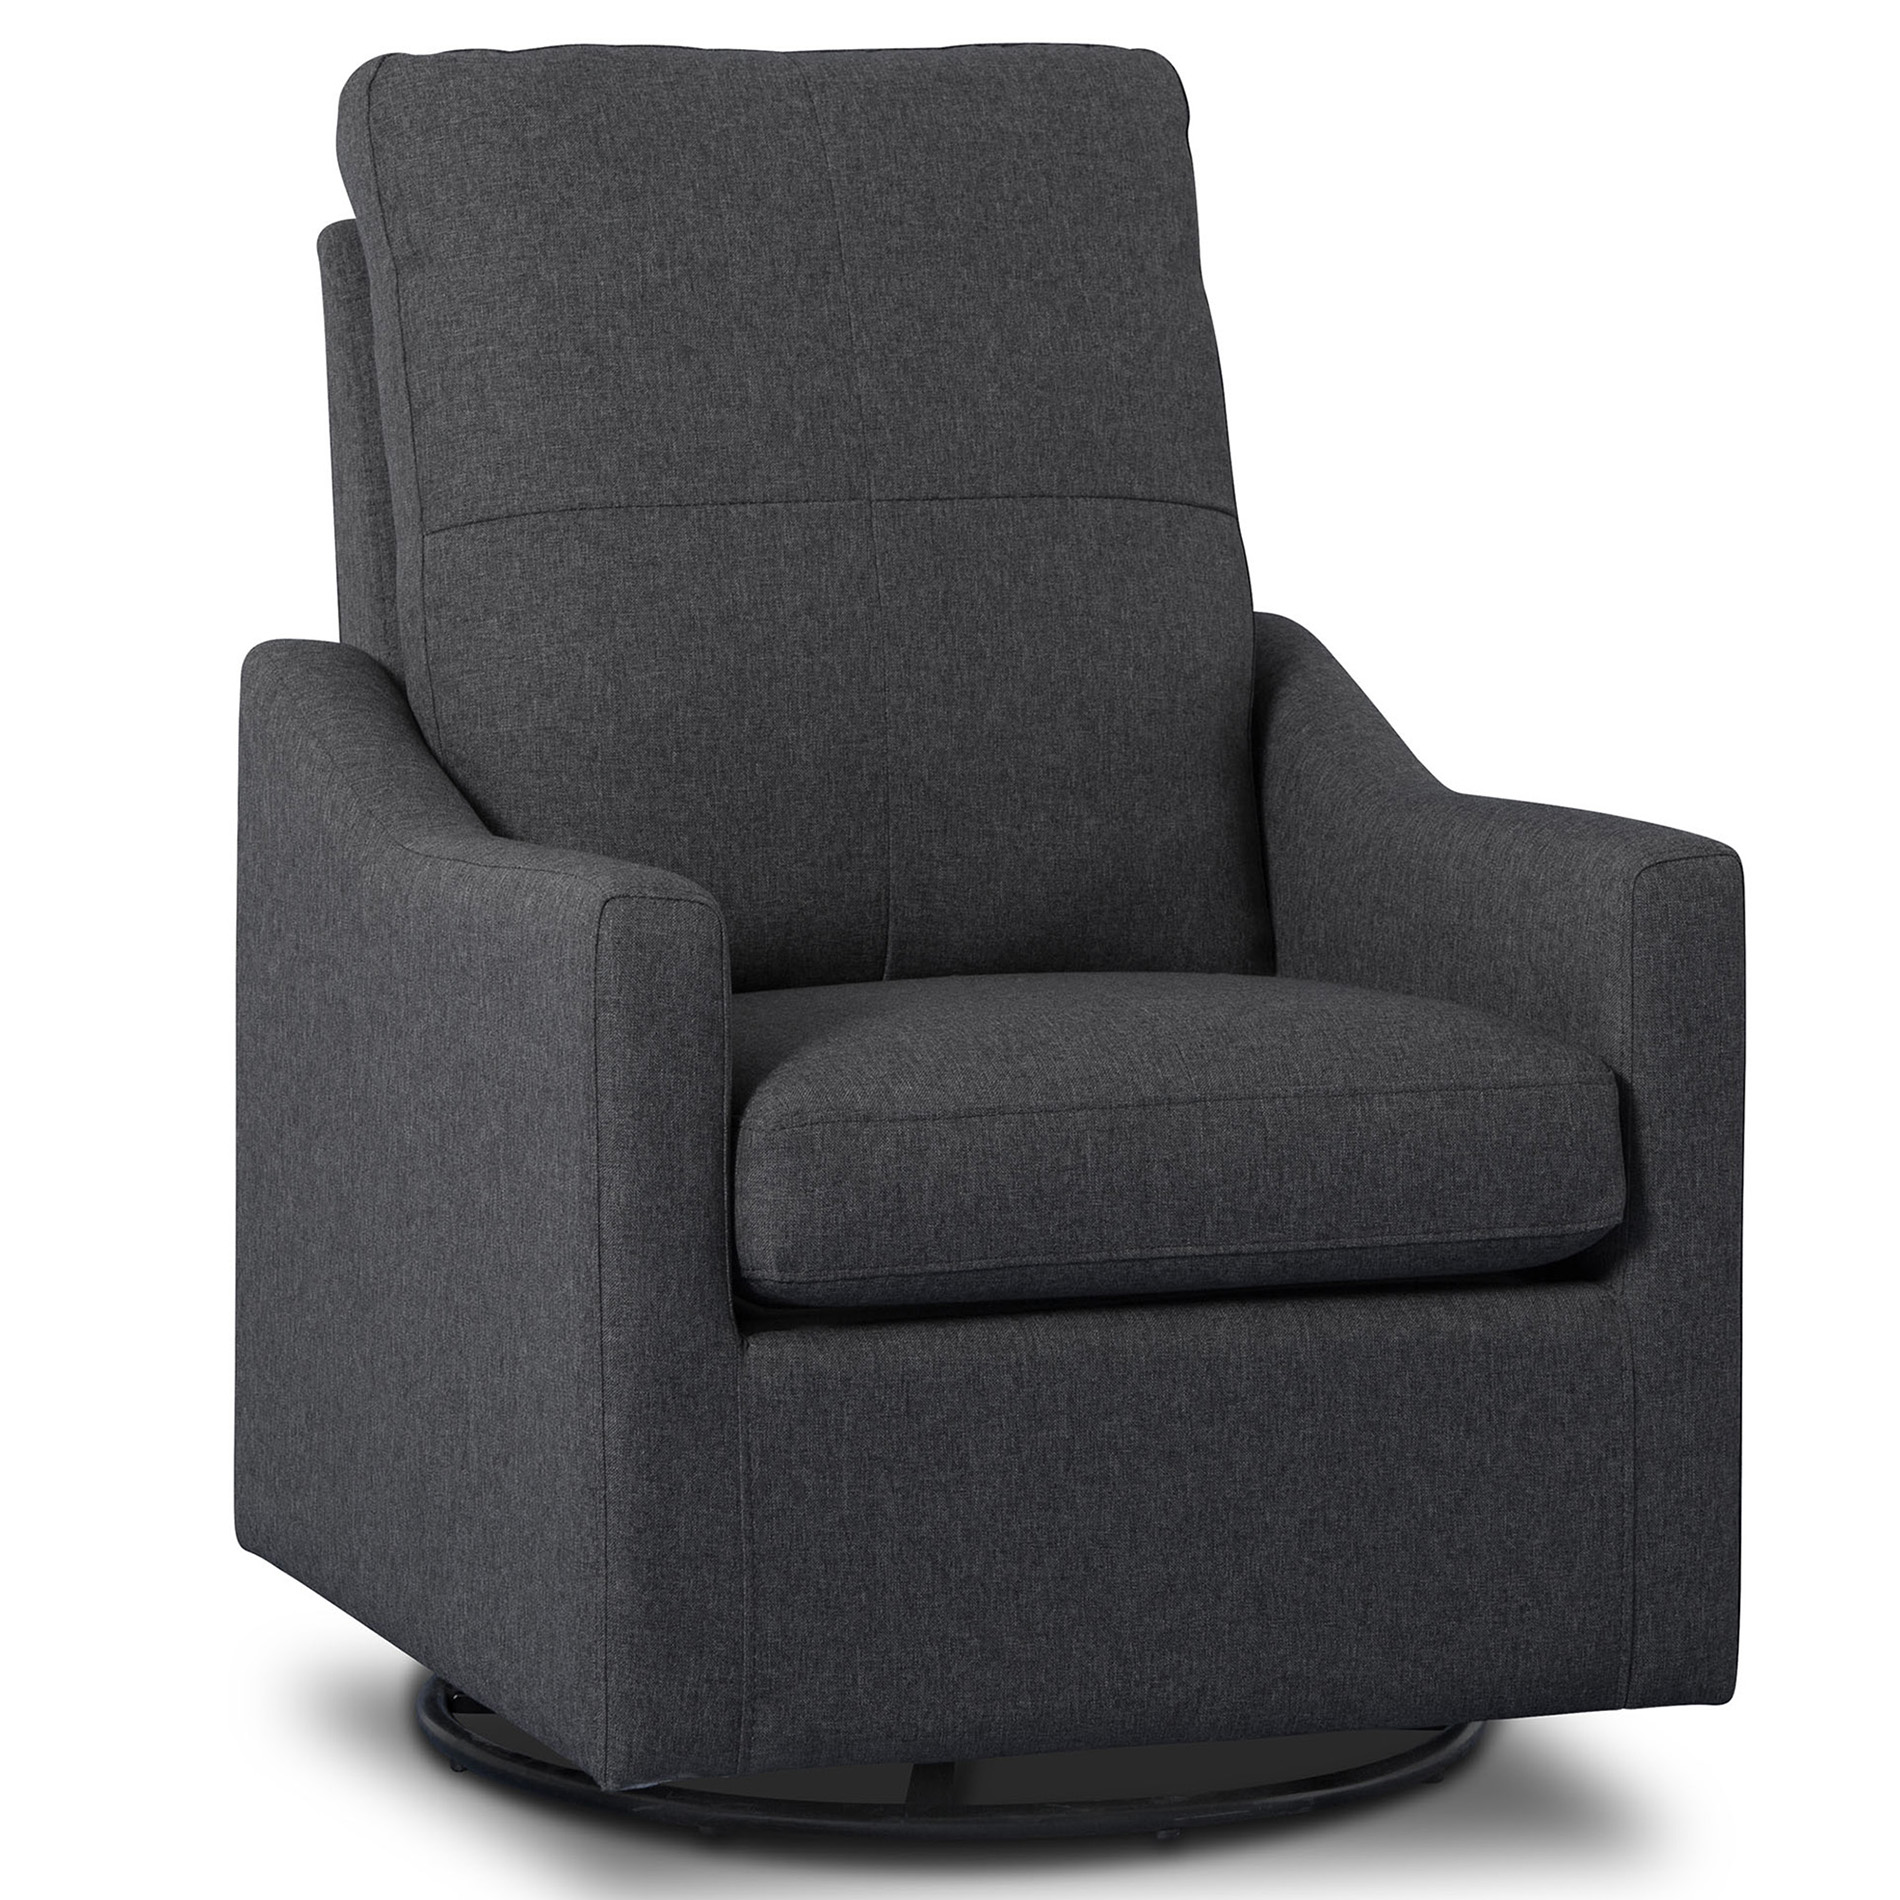 Delta Children Chair Delta Children Kenwood Nursery Glider Swivel Rocker Chair Charcoal